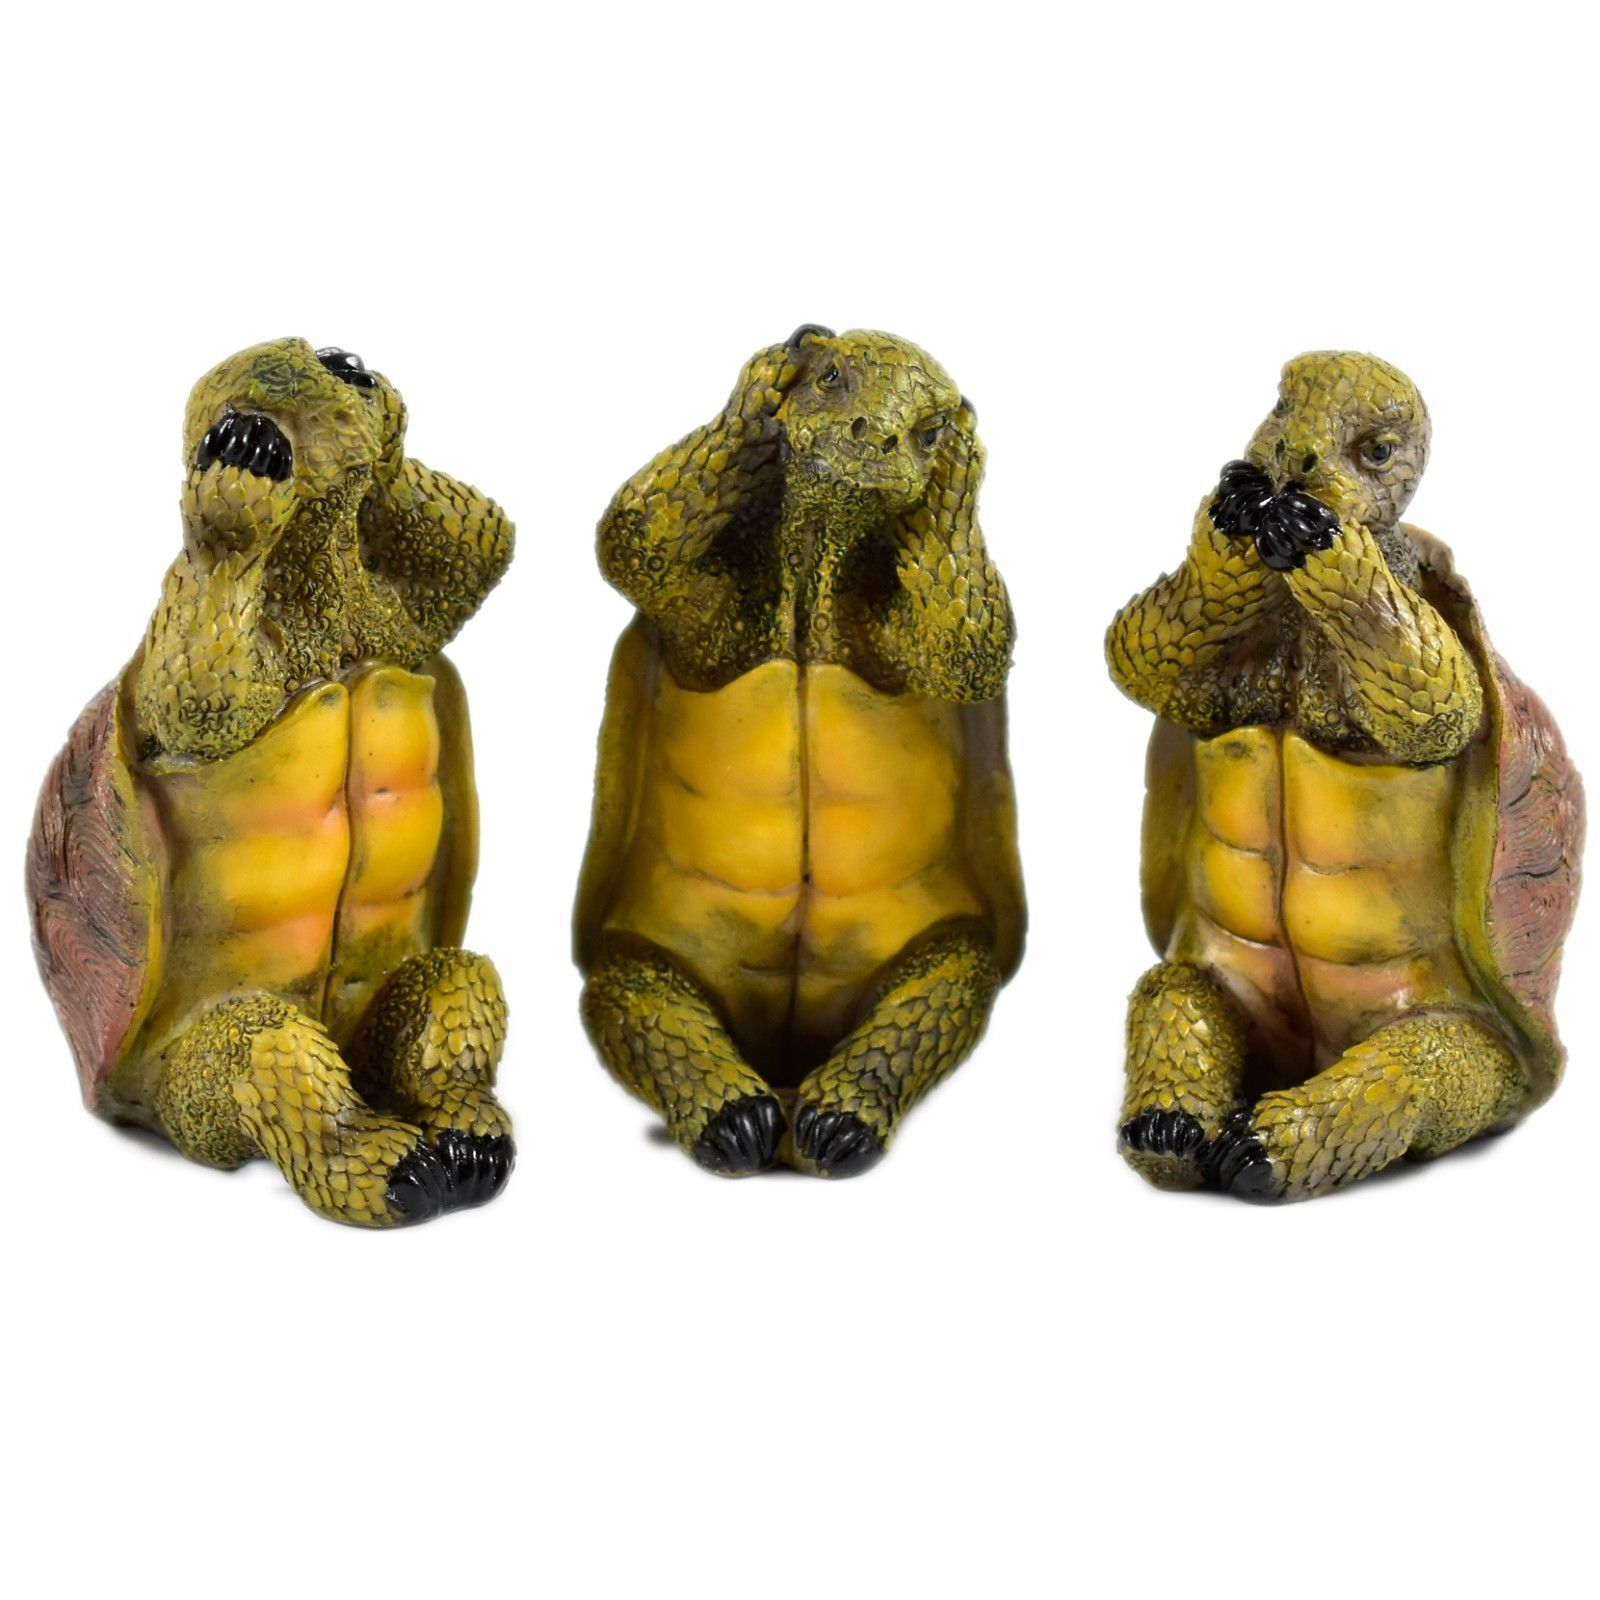 See No Evil Speak No Evil Hear No Evil Three Wise Turtles Tortoise Figurine Set